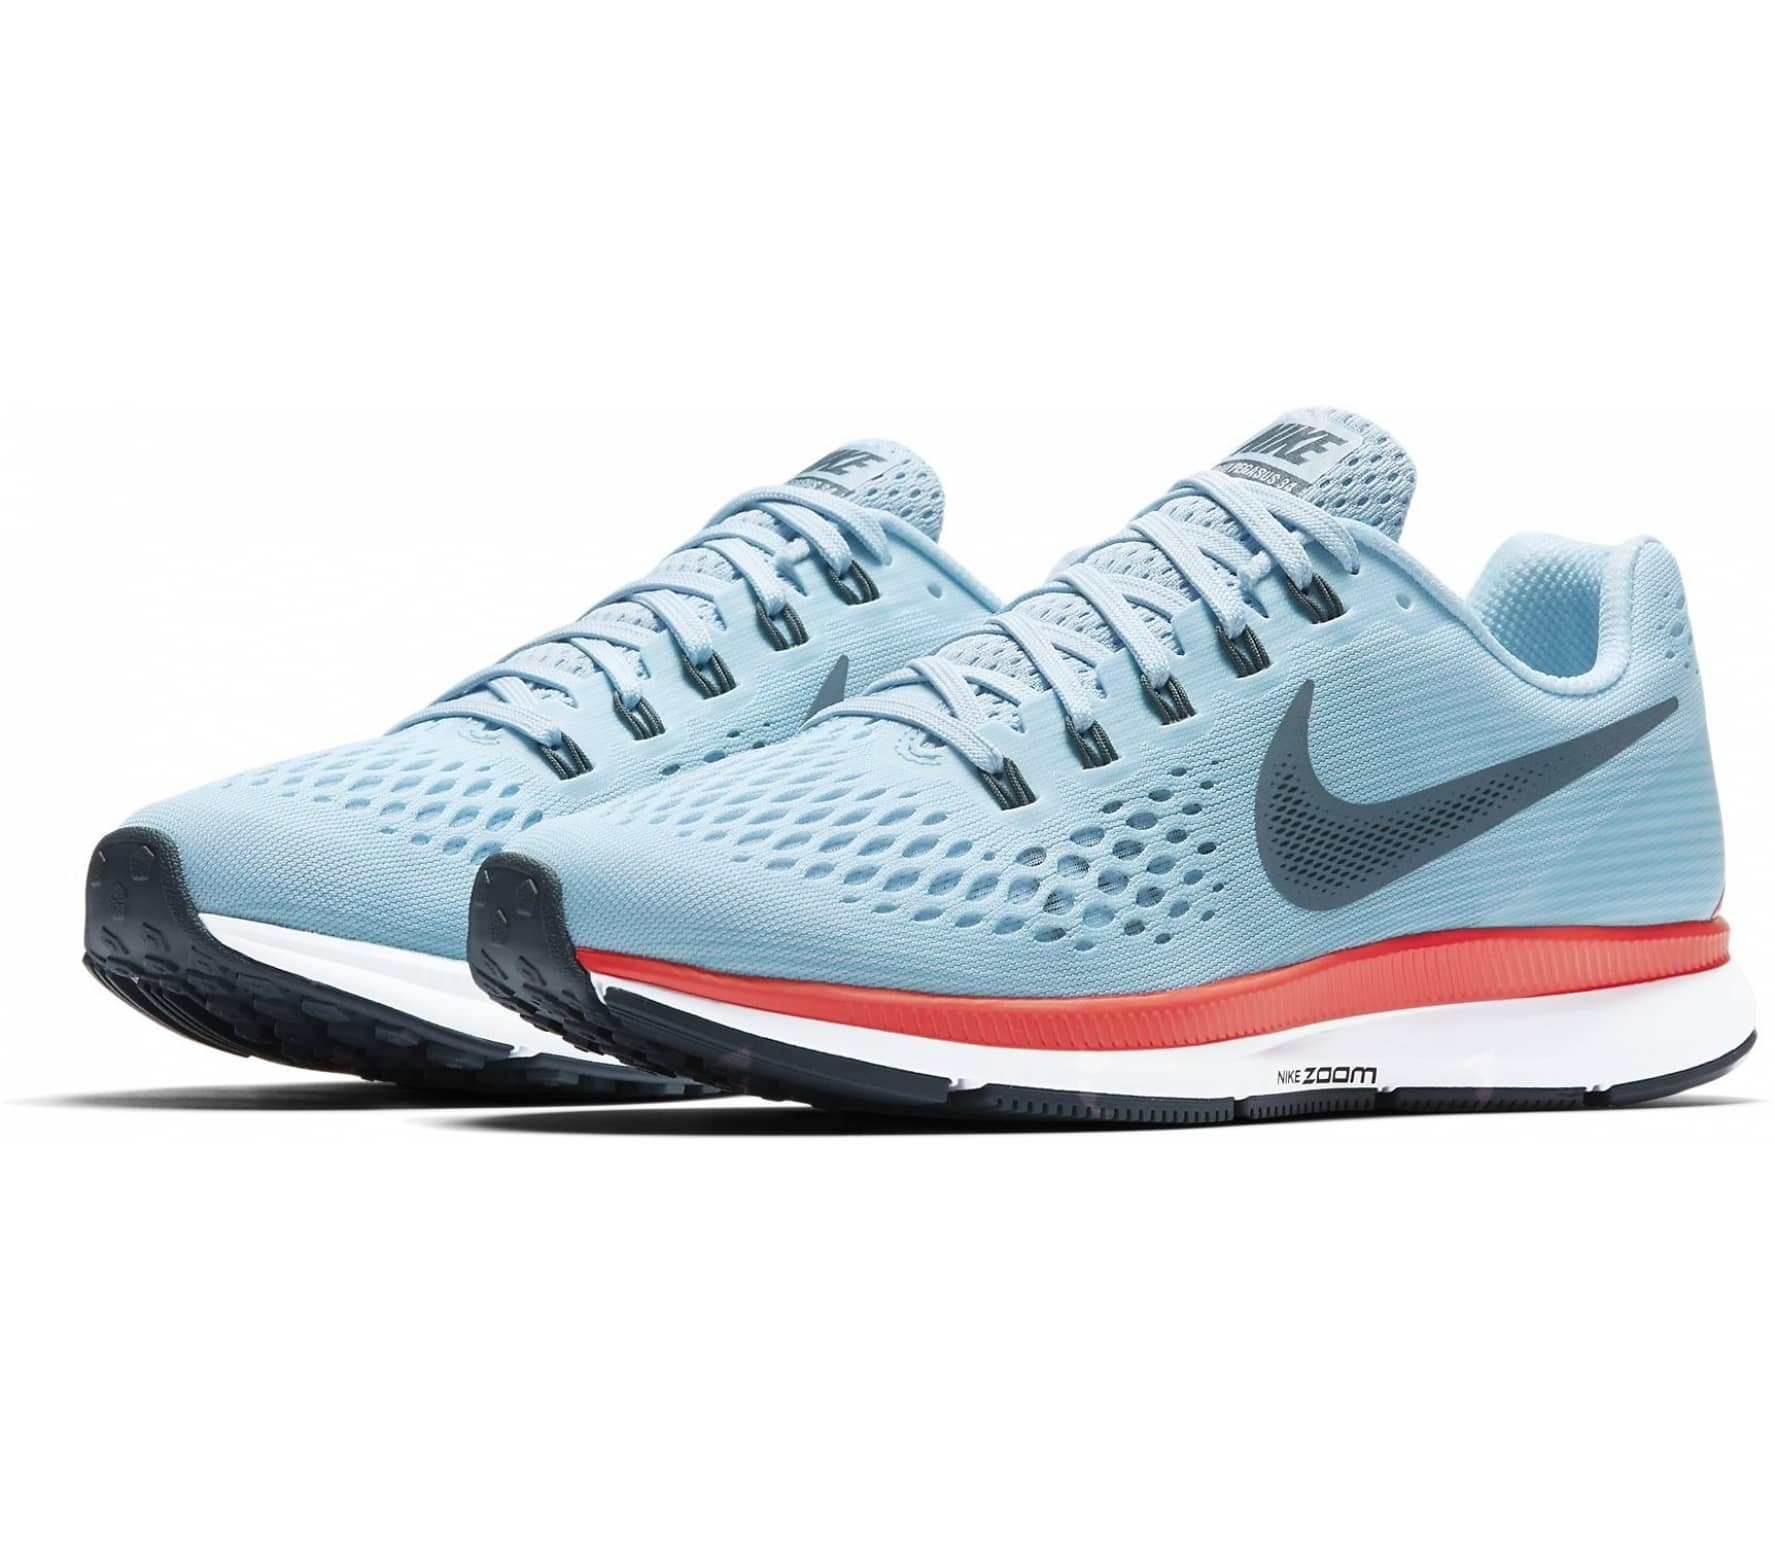 db130bd5dd735 Nike - Air Zoom Pegasus 34 women s running shoes (light blue) - buy ...